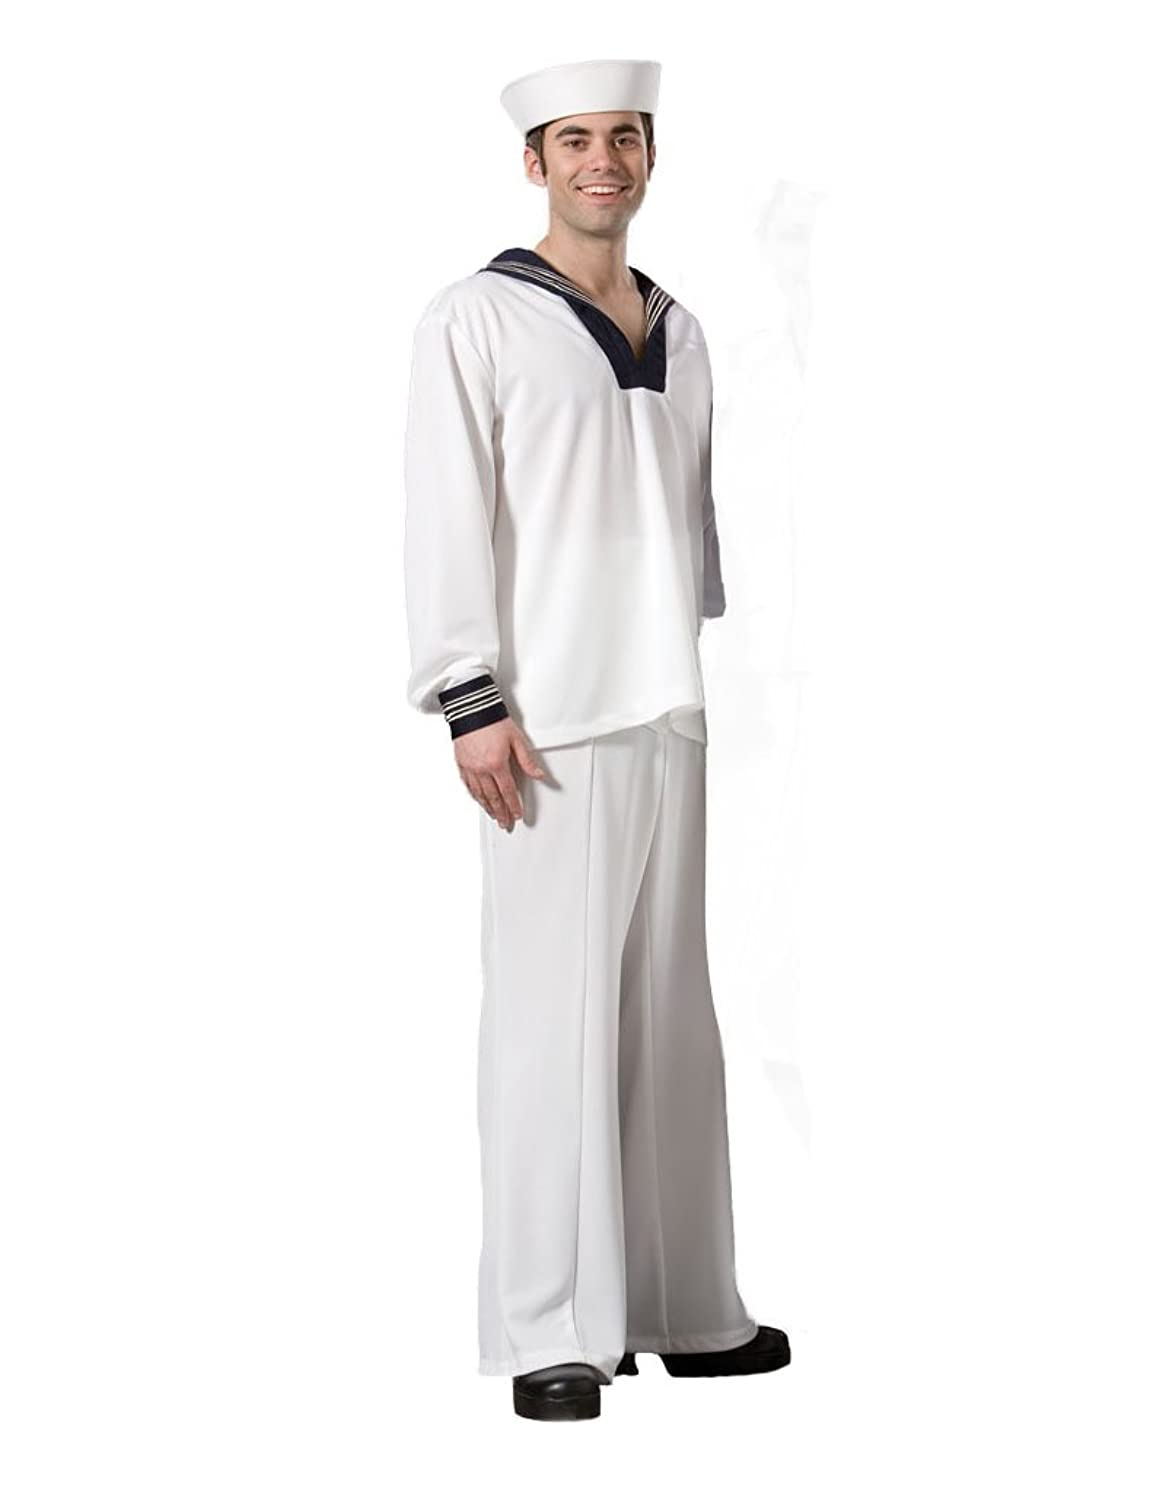 Vintage Men's Costumes – 1920s, 1930s, 1940s, 1950s, 1960s Mens US Navy Sailor Theater Costume $209.99 AT vintagedancer.com